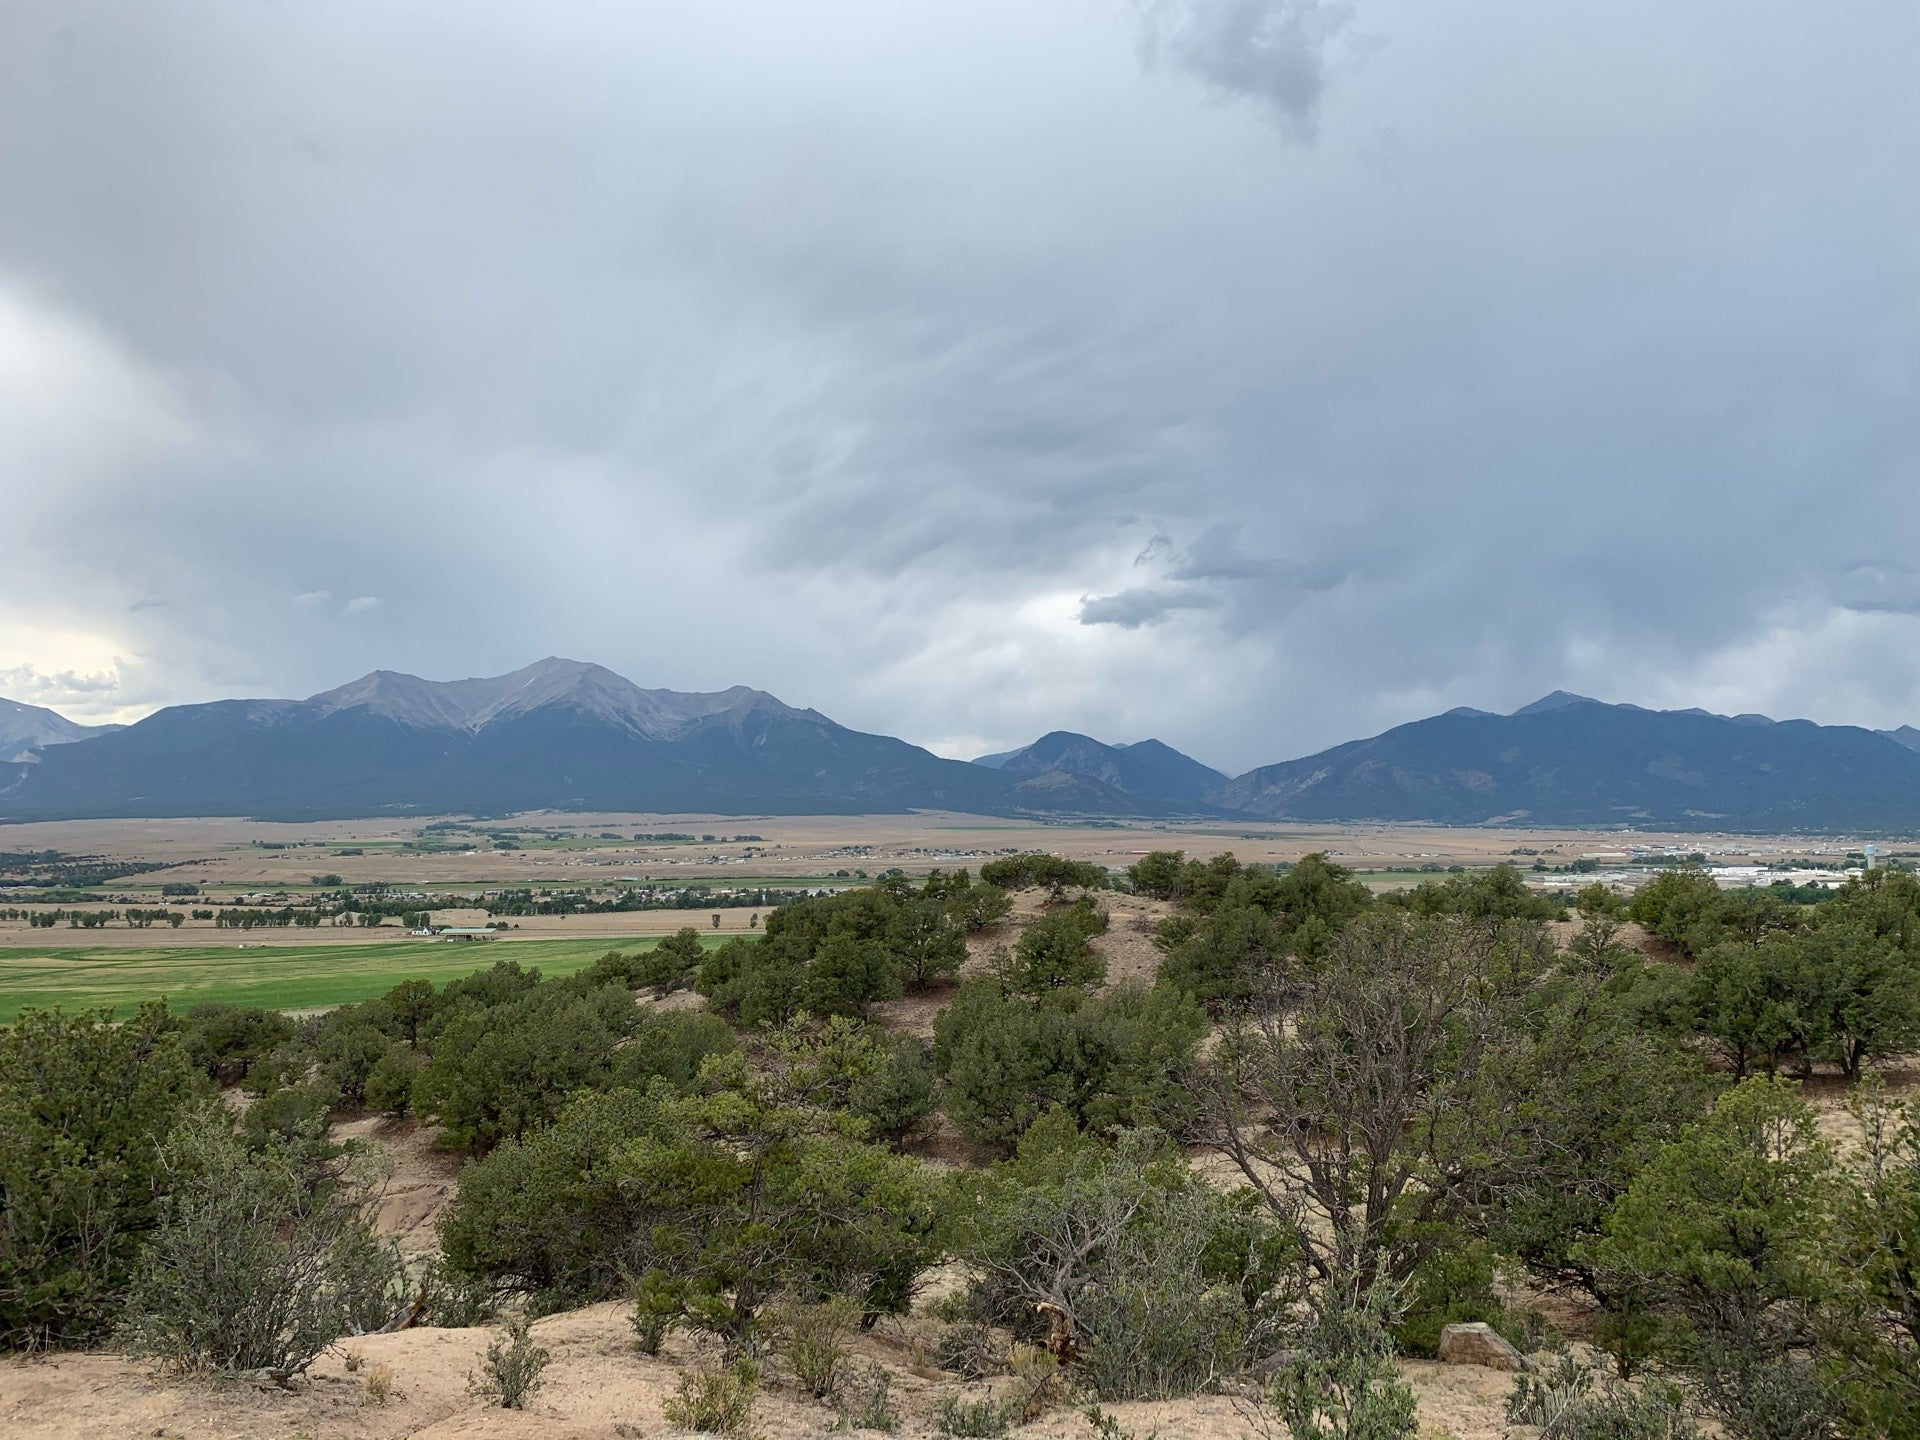 Checked in at Collegiate Peaks Overlook